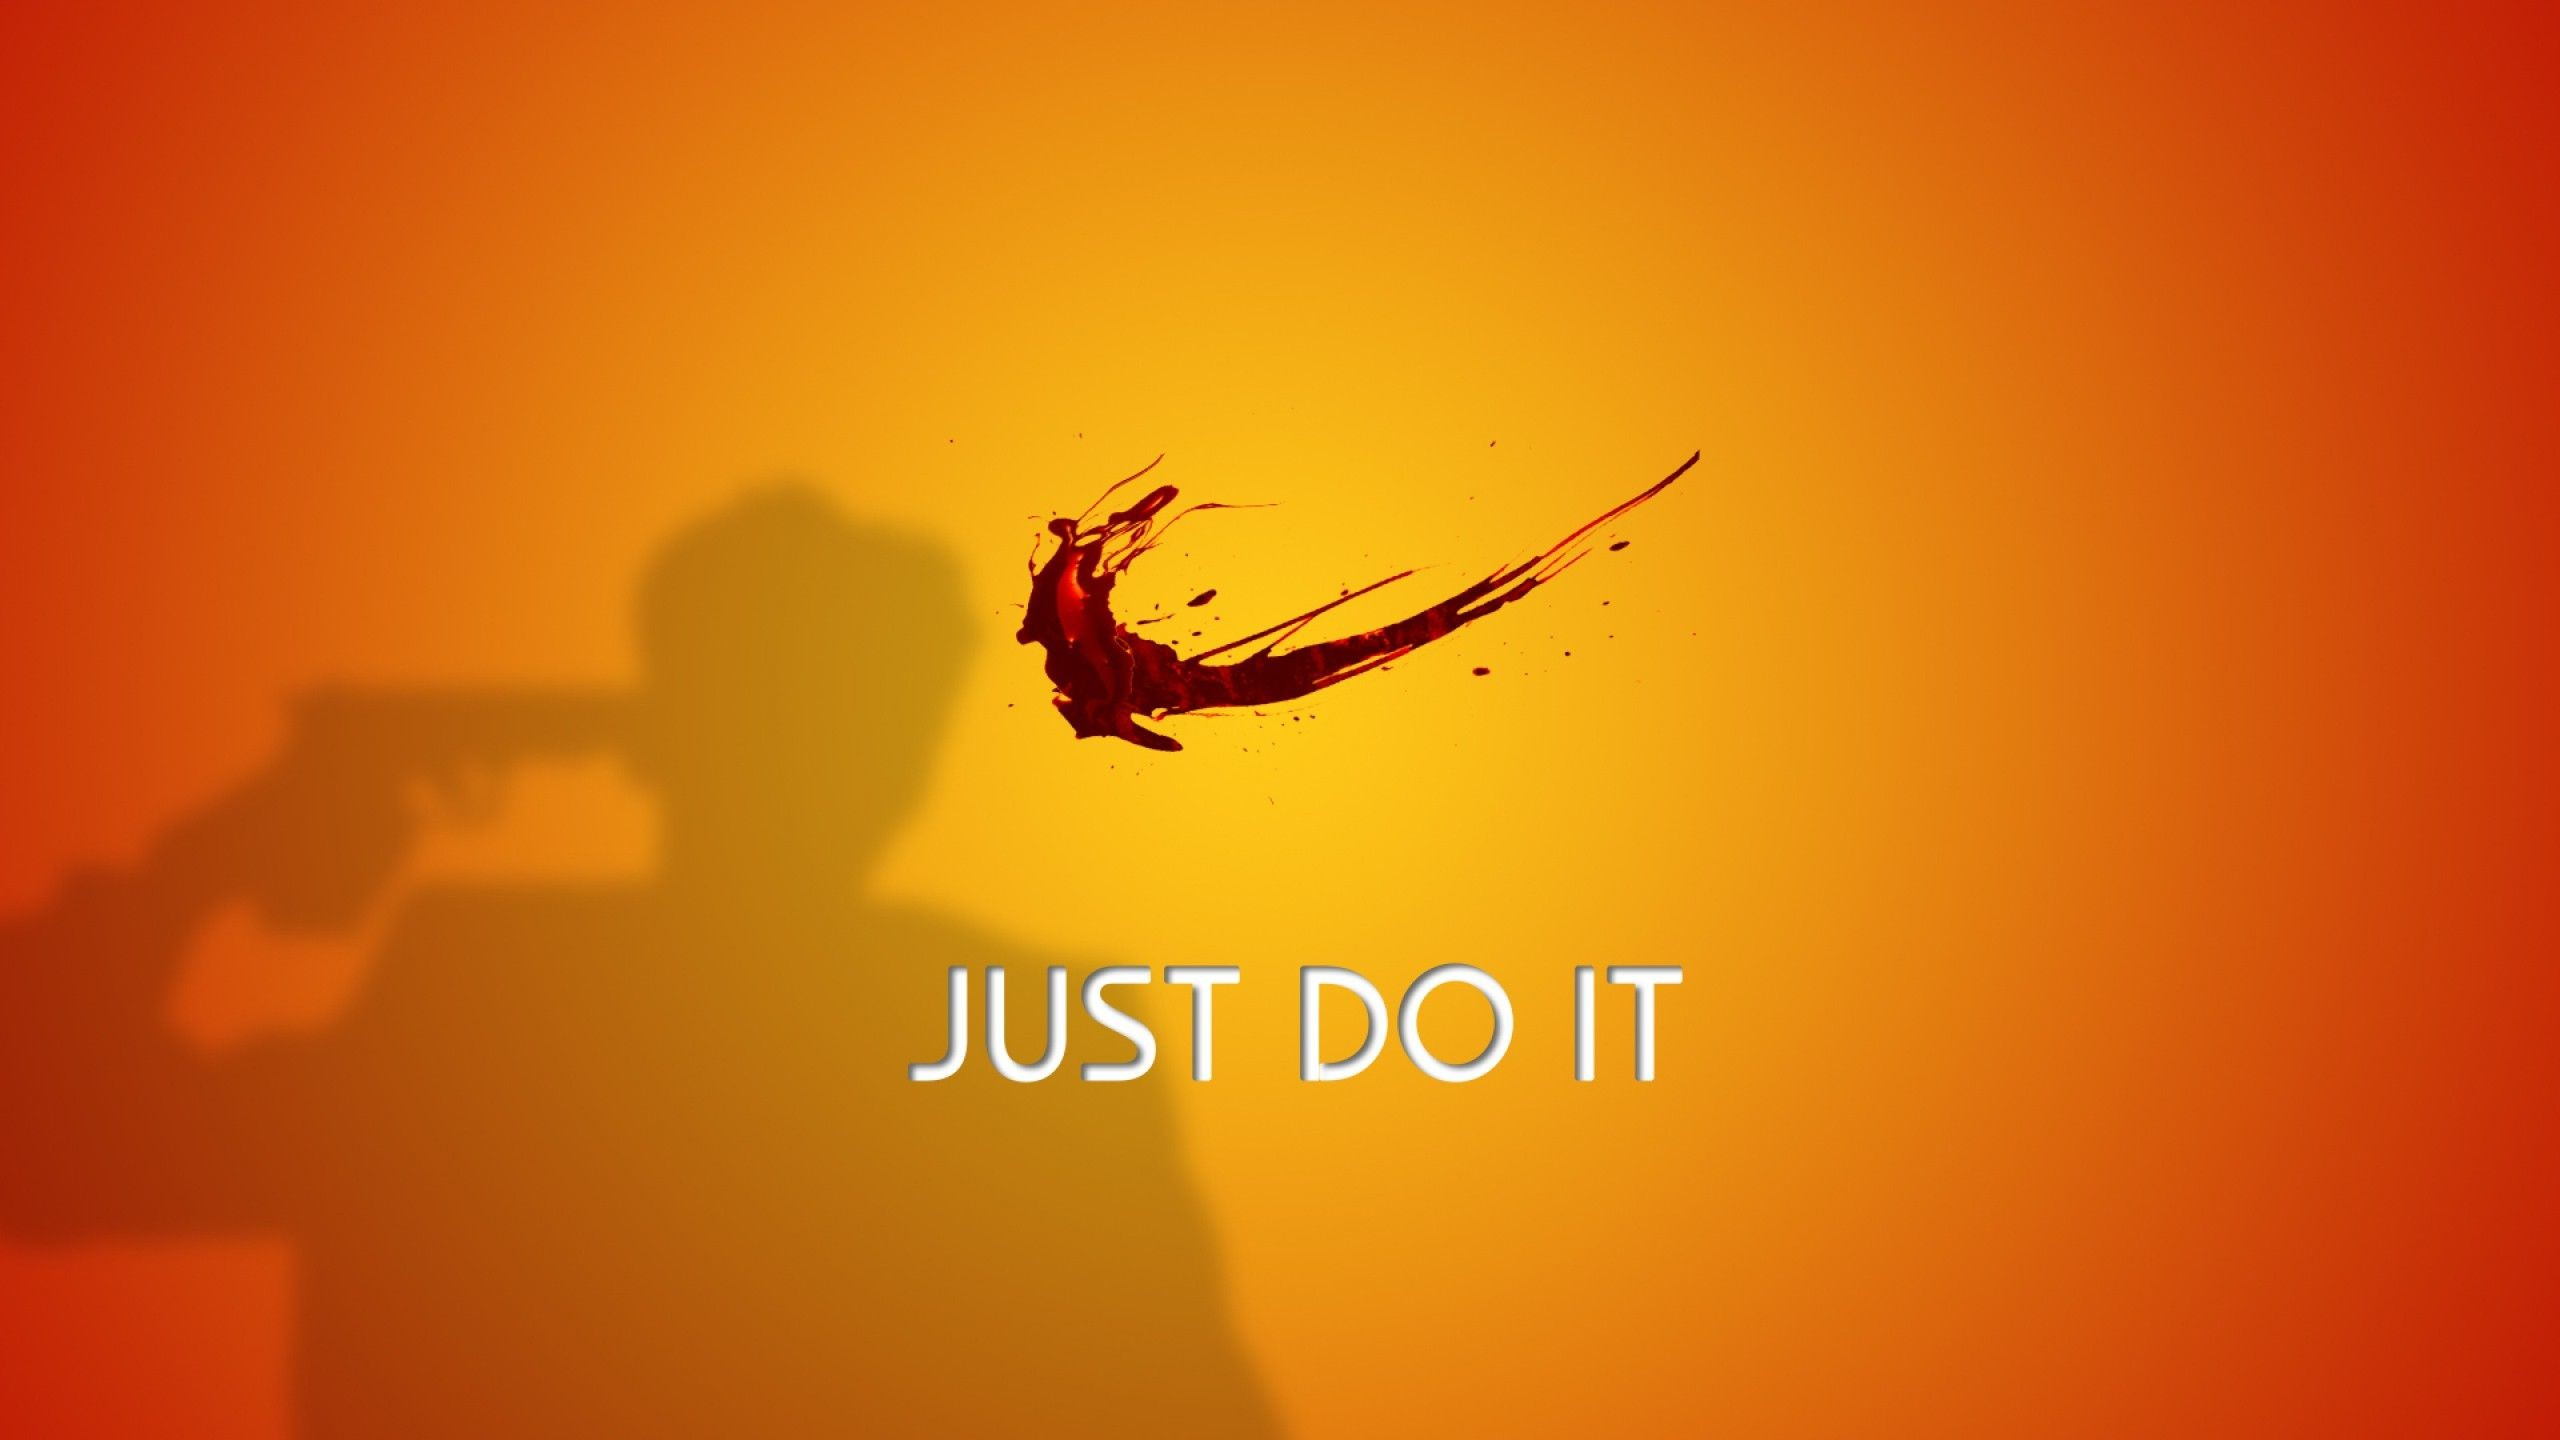 Wallpapers Suicide Just Do It Blood Nike Yellow .